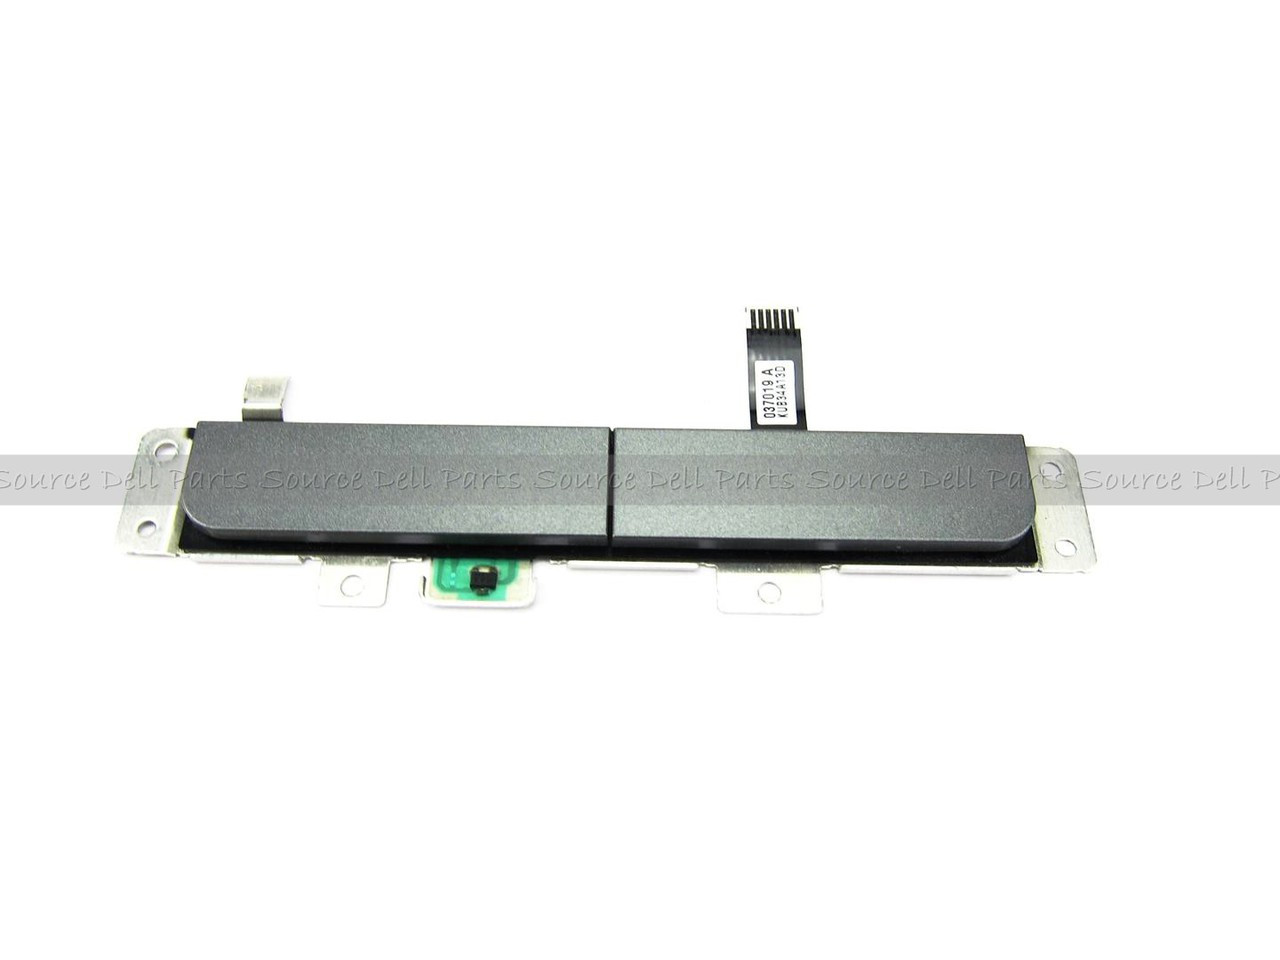 Dell XPS L702X L502X Touchpad Mouse Click Buttons - KUB34A11D